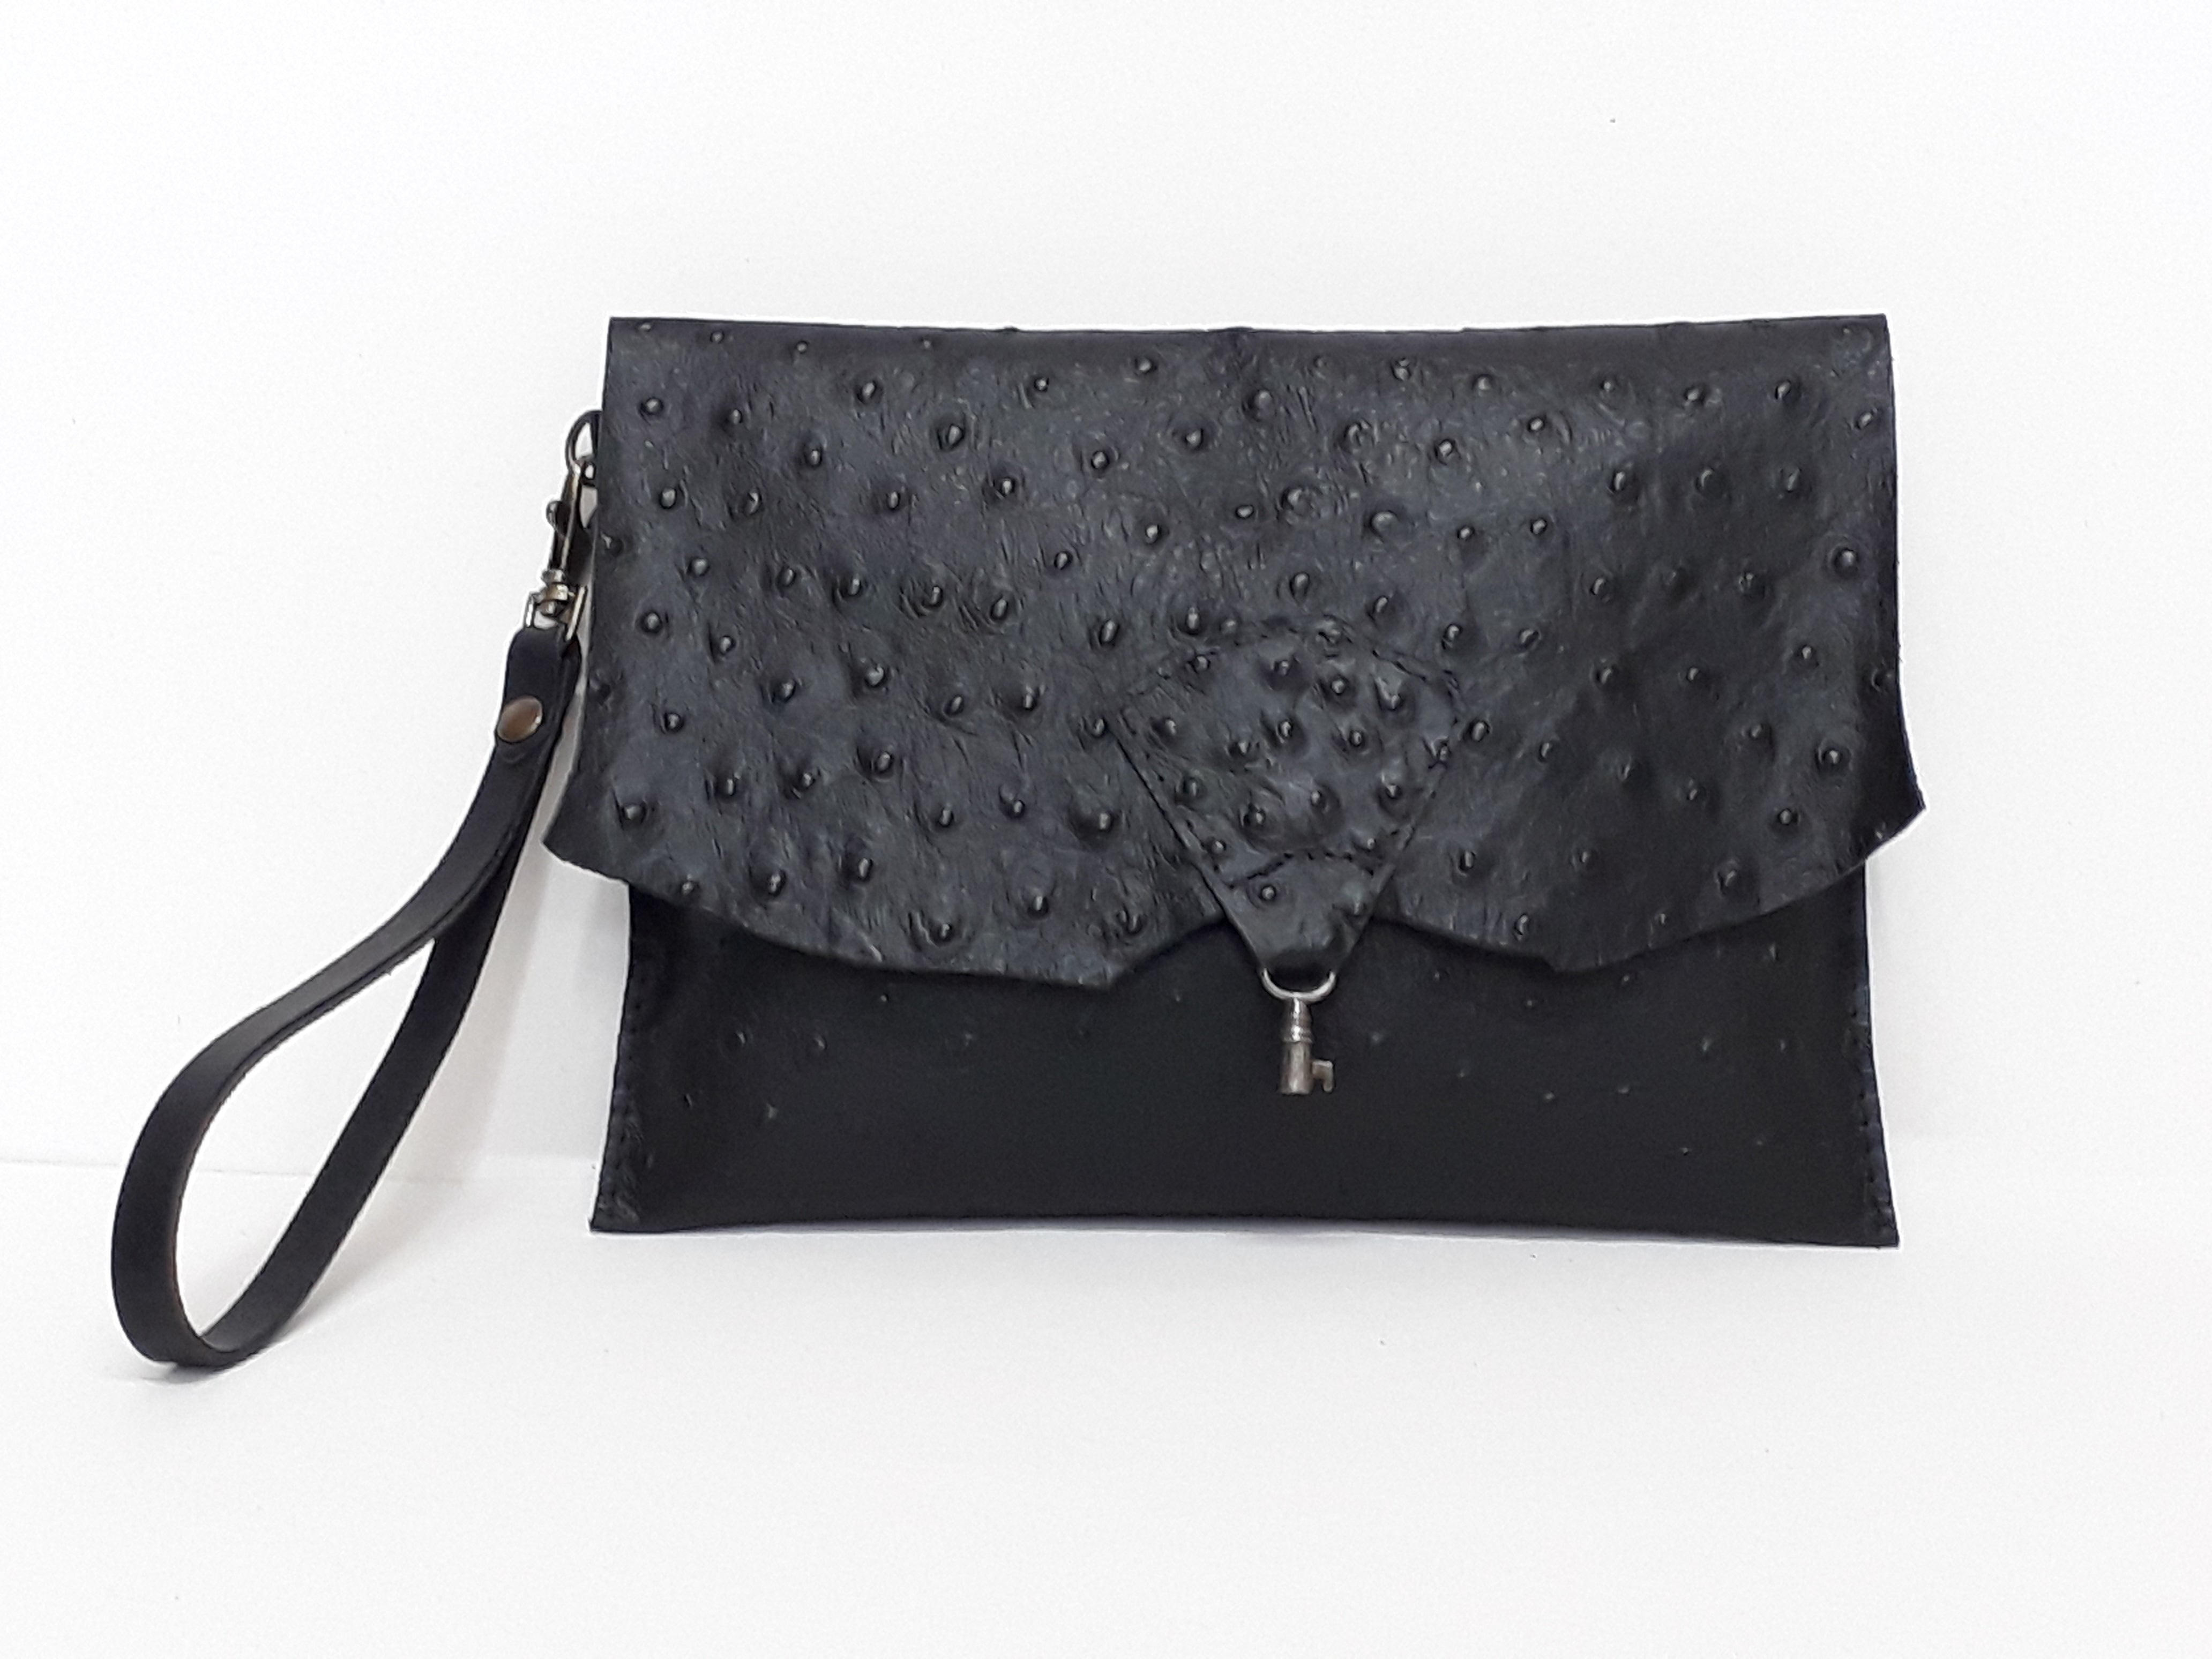 Raw Edge Leather Clutch with Vintage Key Detail - Black Ostrich - Coterie Leather Bags